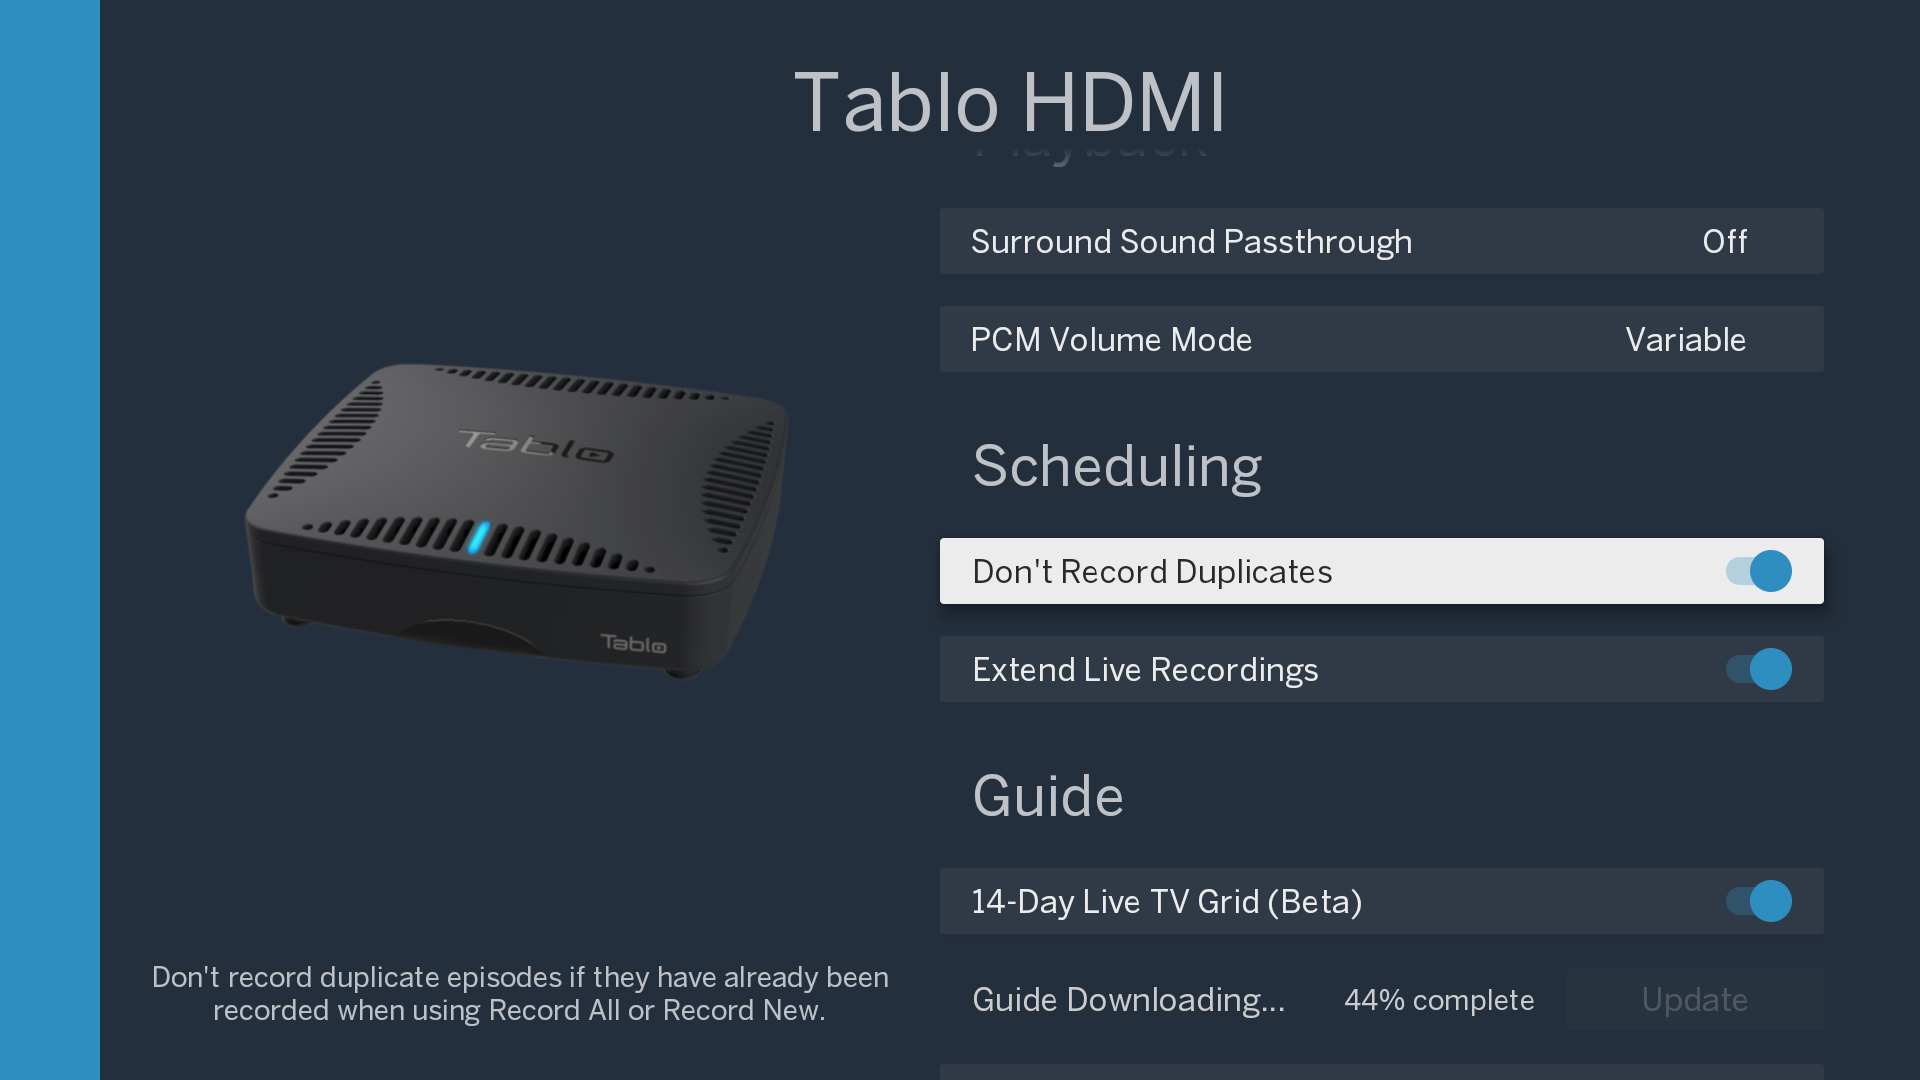 tablo_hdmi_settings_scheduling.png